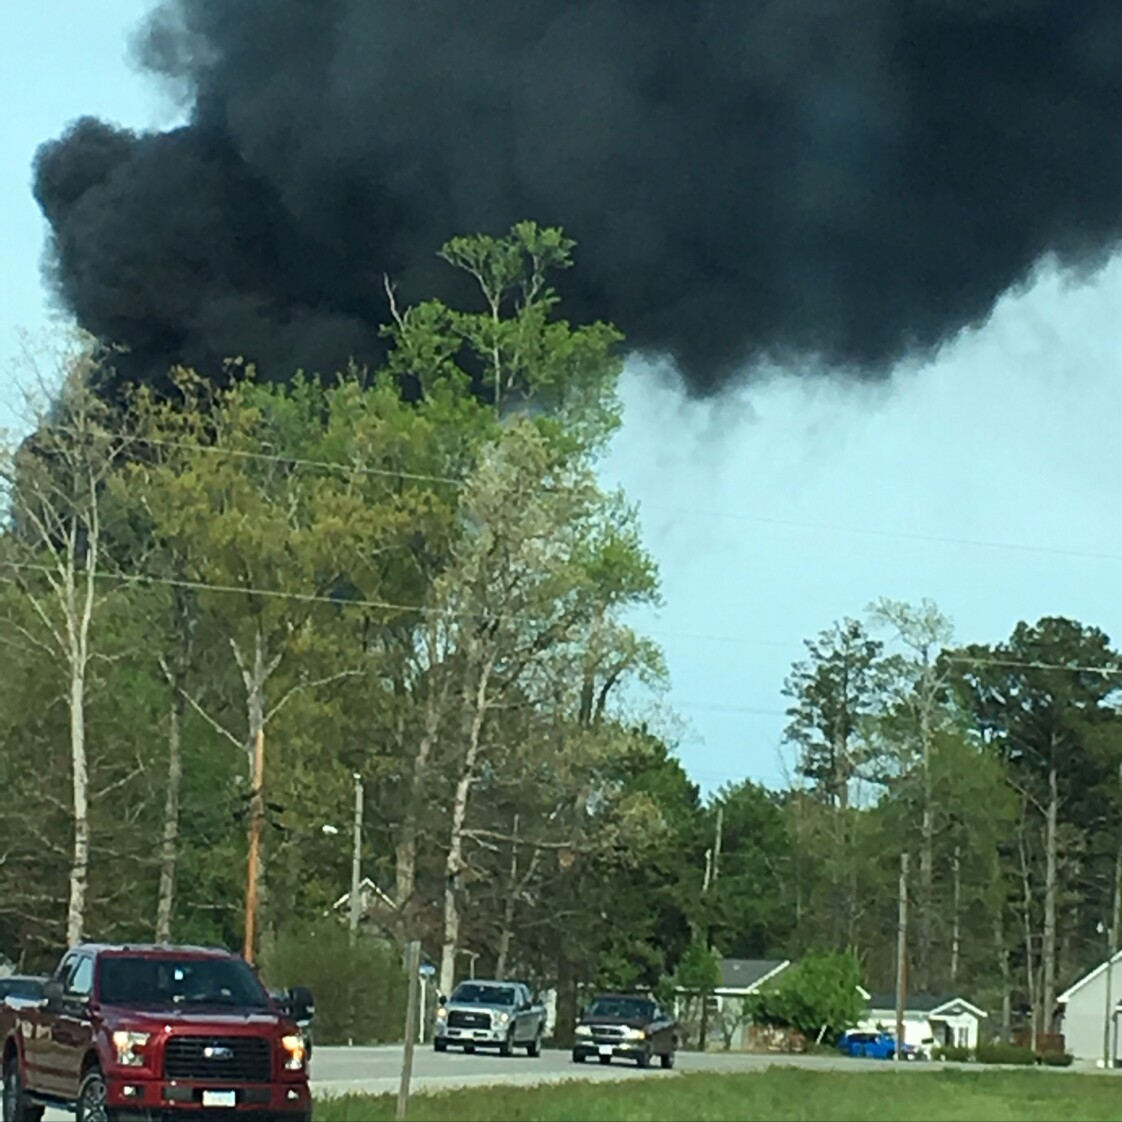 Photos: Crews respond to tire fire in Isle of Wight